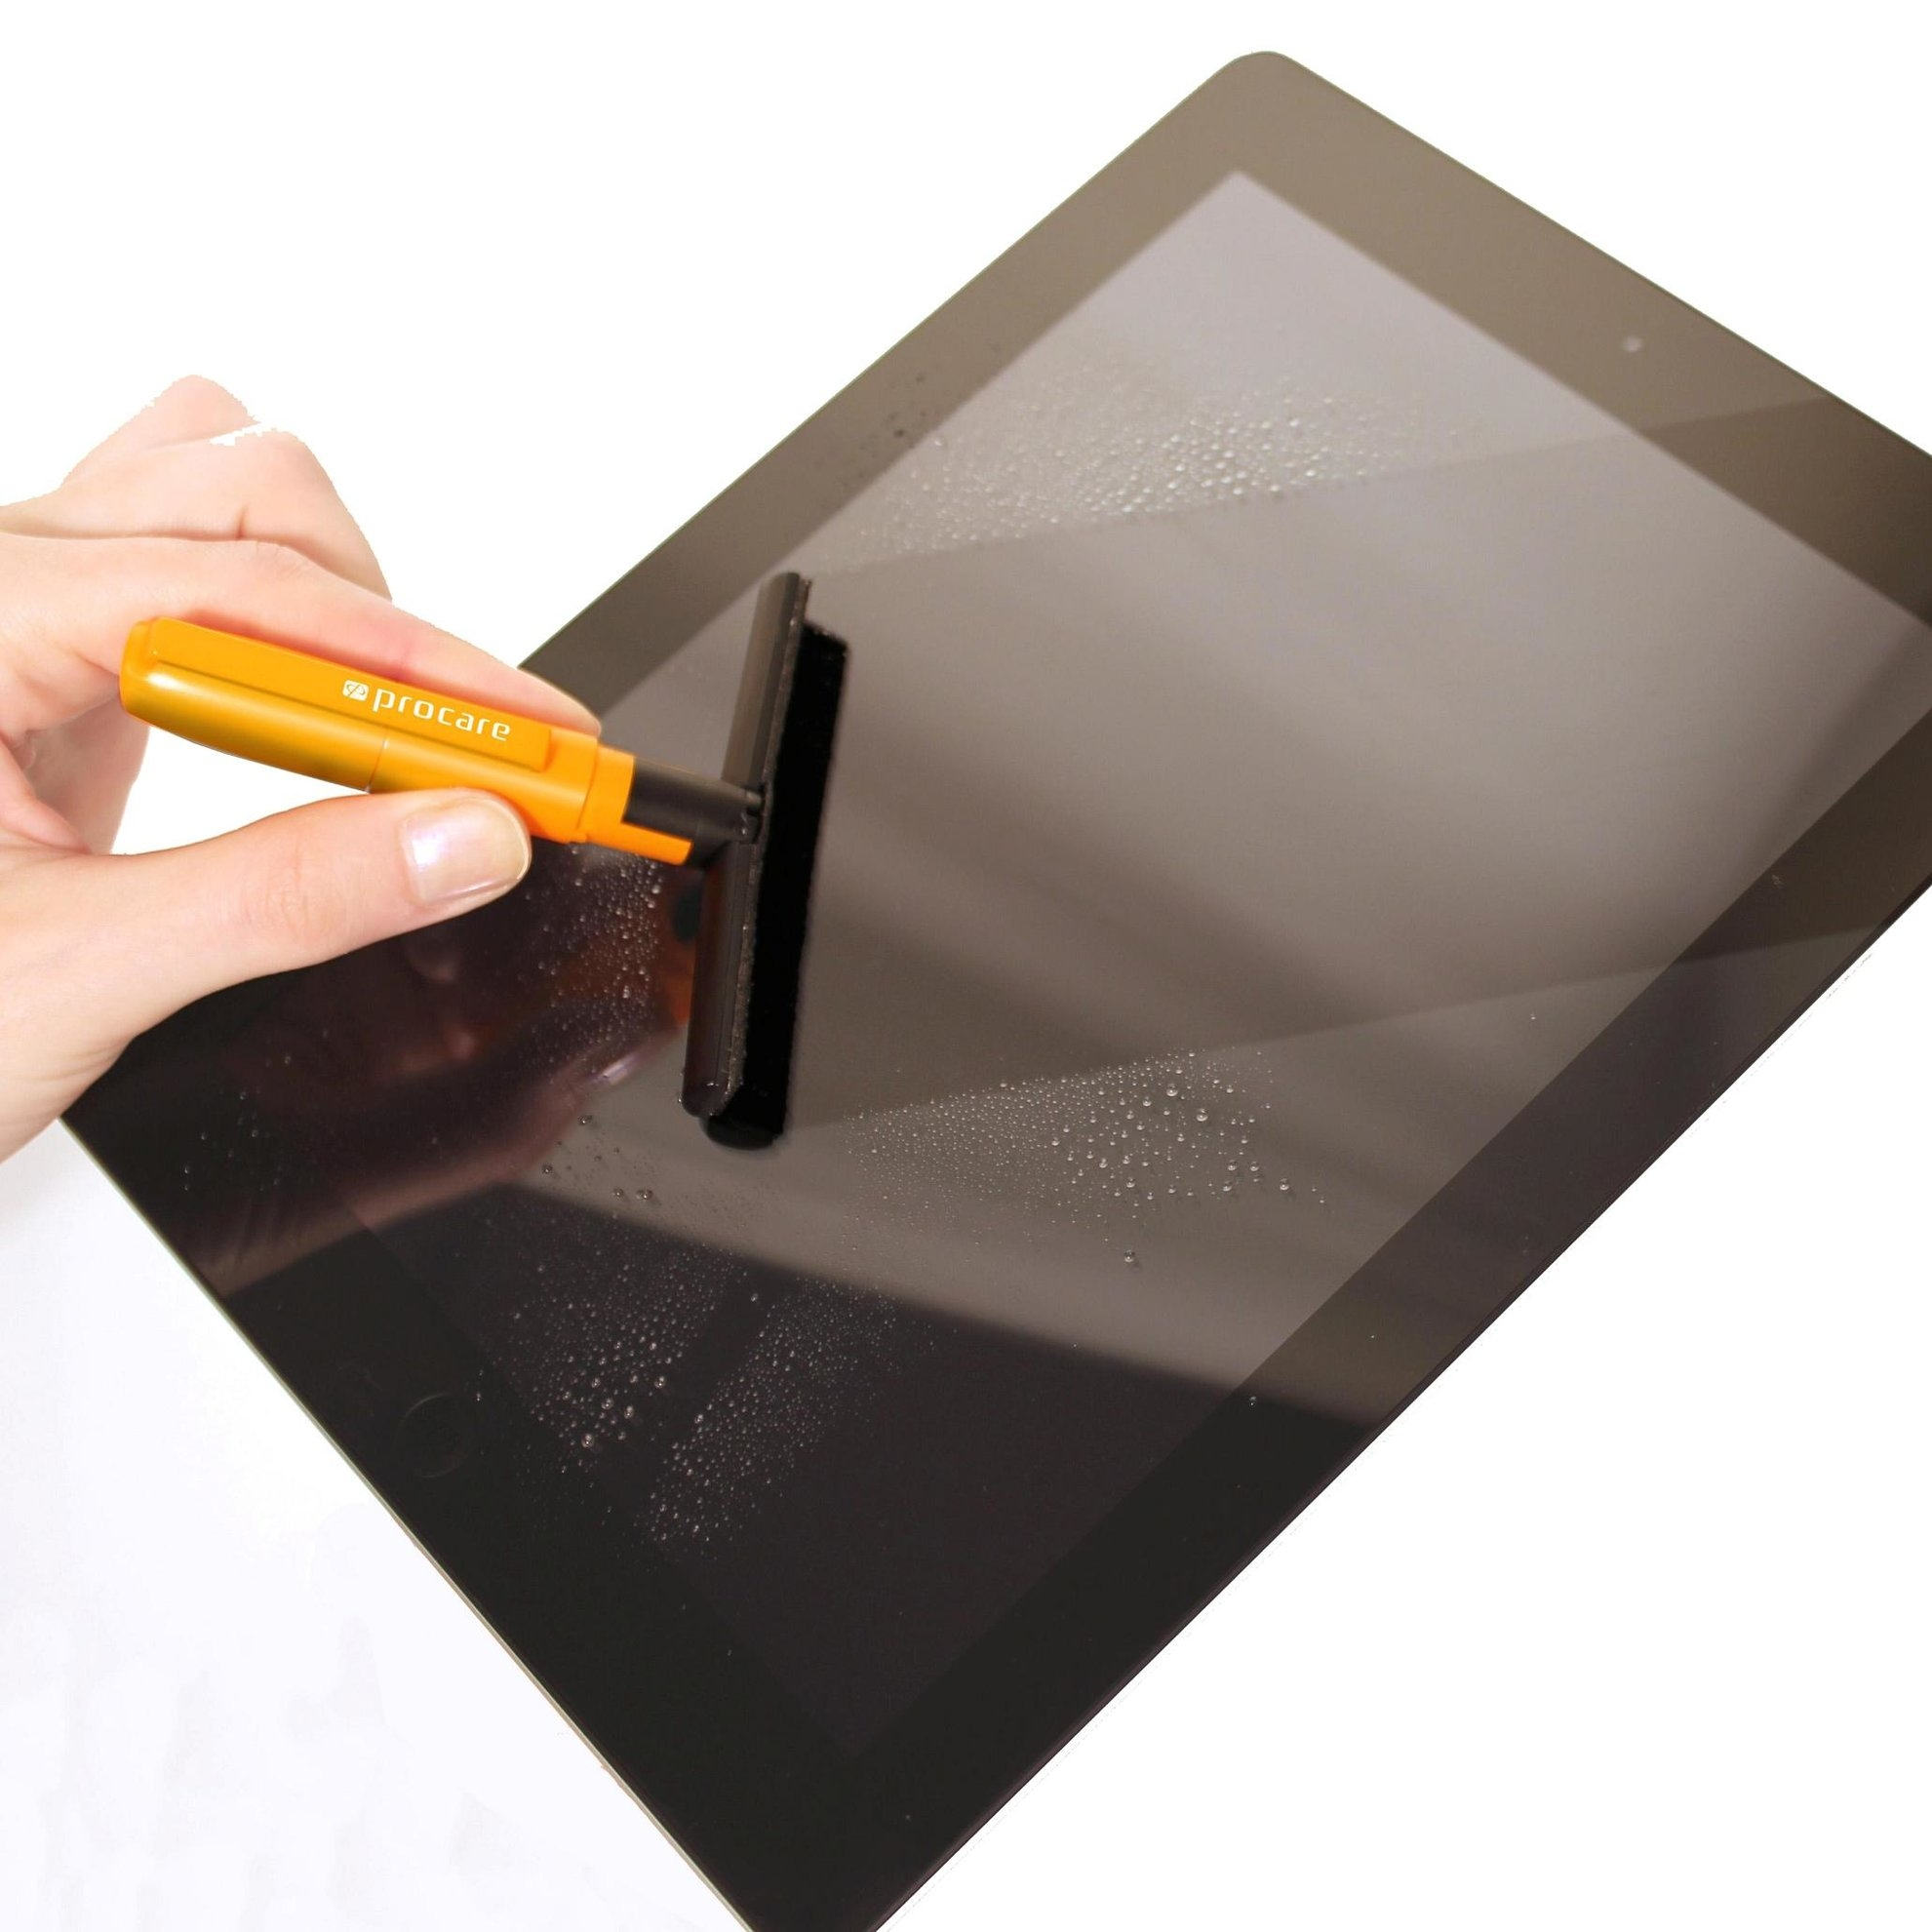 Touch Tablet and Cleaning Kit